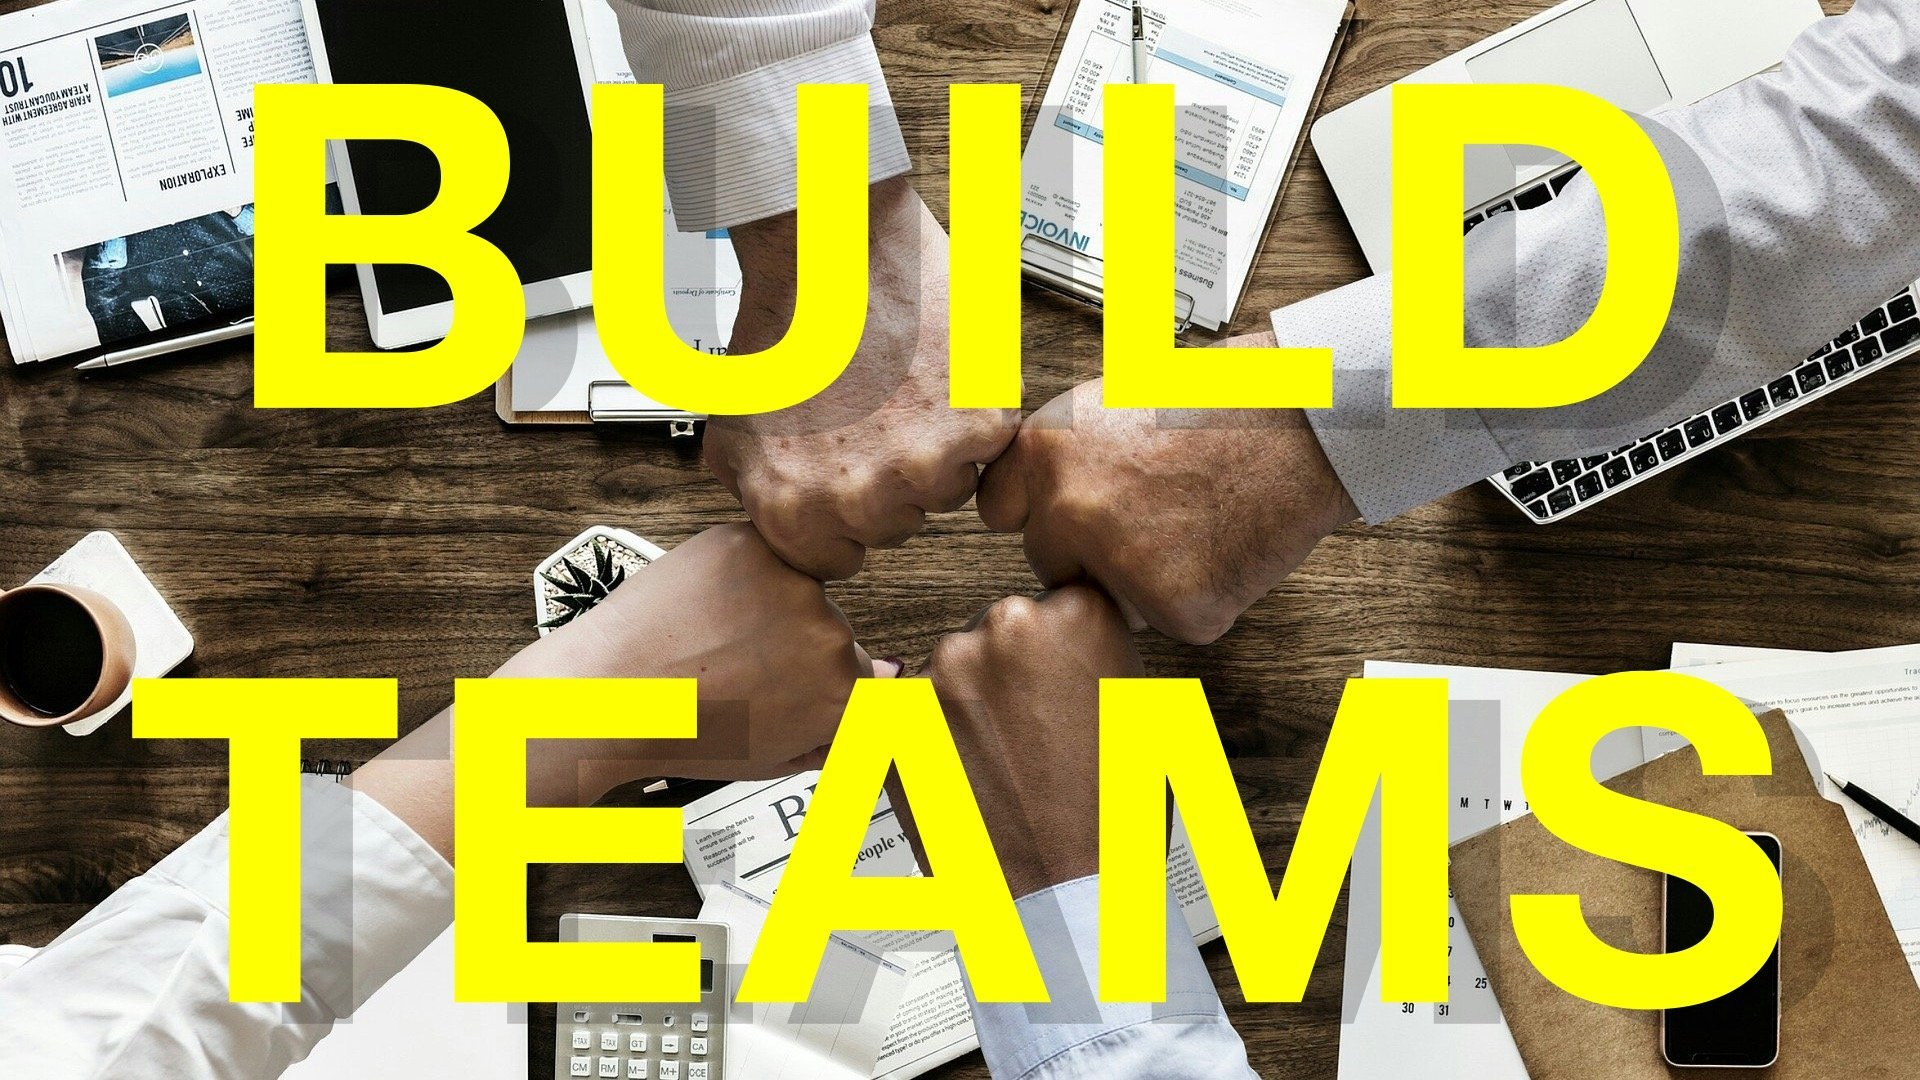 How to Build Teams: 7 Easy Steps to Master Team Building, Employee Engagement, Teamwork & Bonding